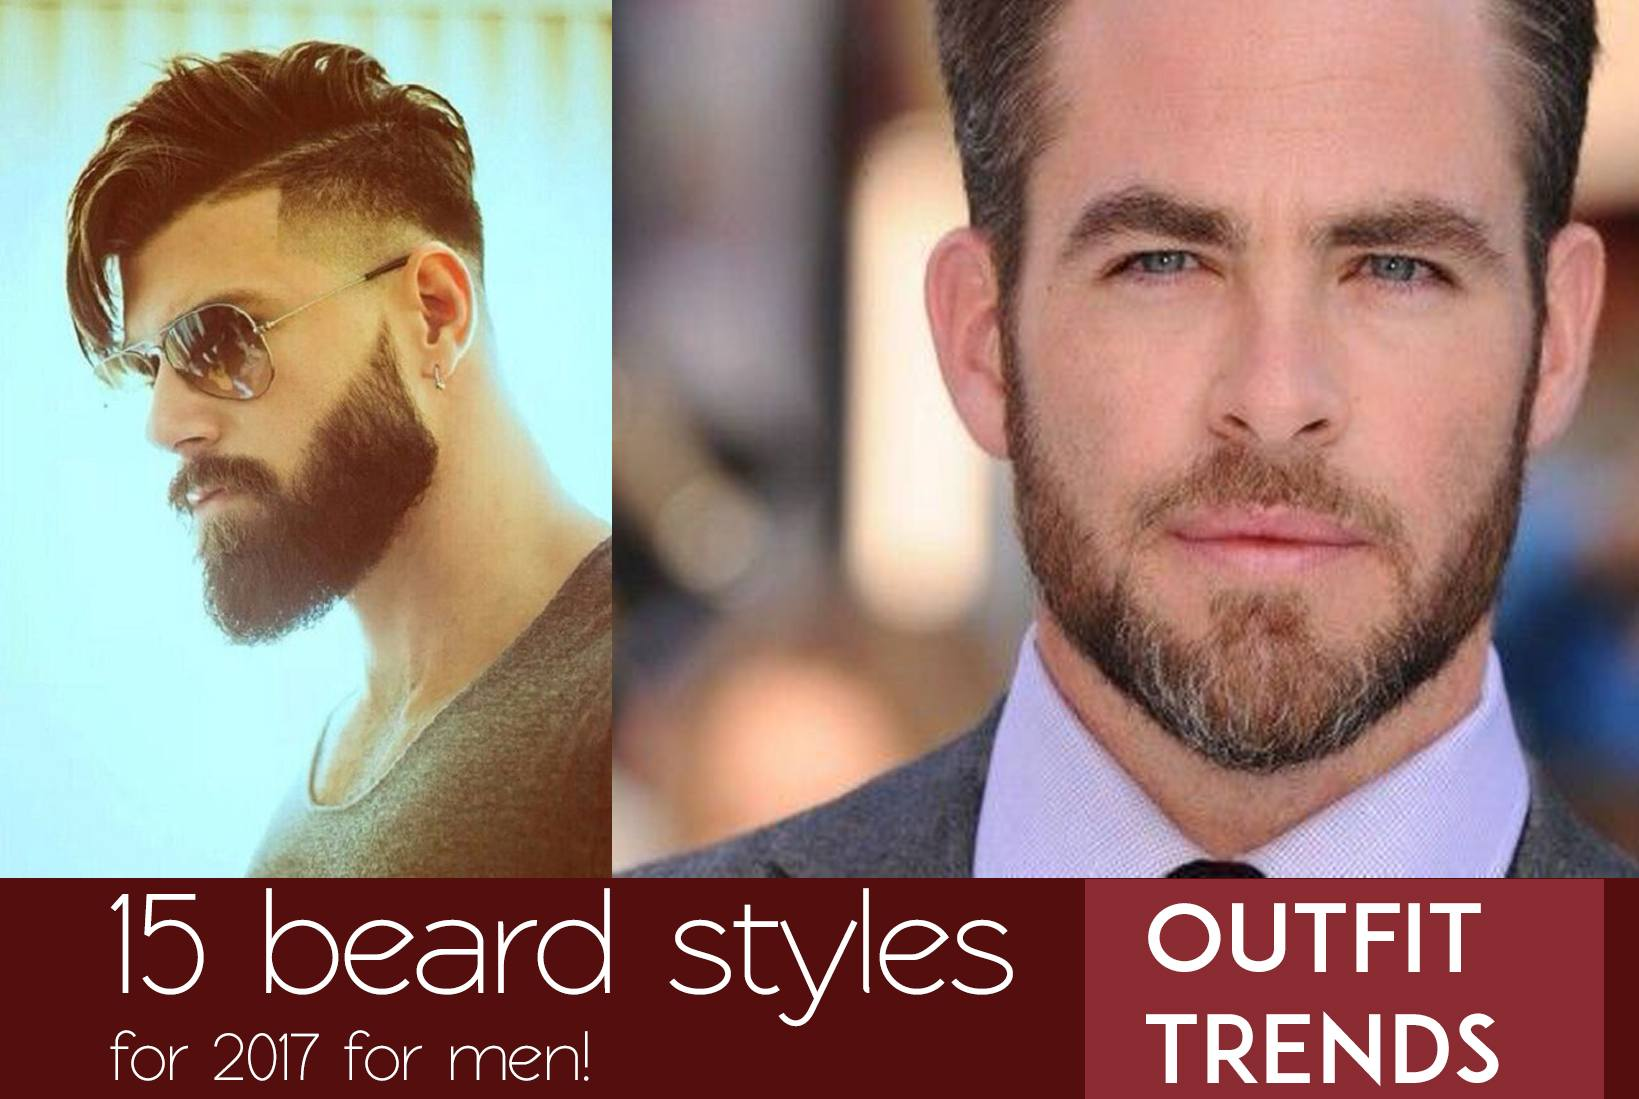 featured-image-for-outfit-trends-4 Beard Styles 2018- 15 Epic Facial Hairs for Men this Year